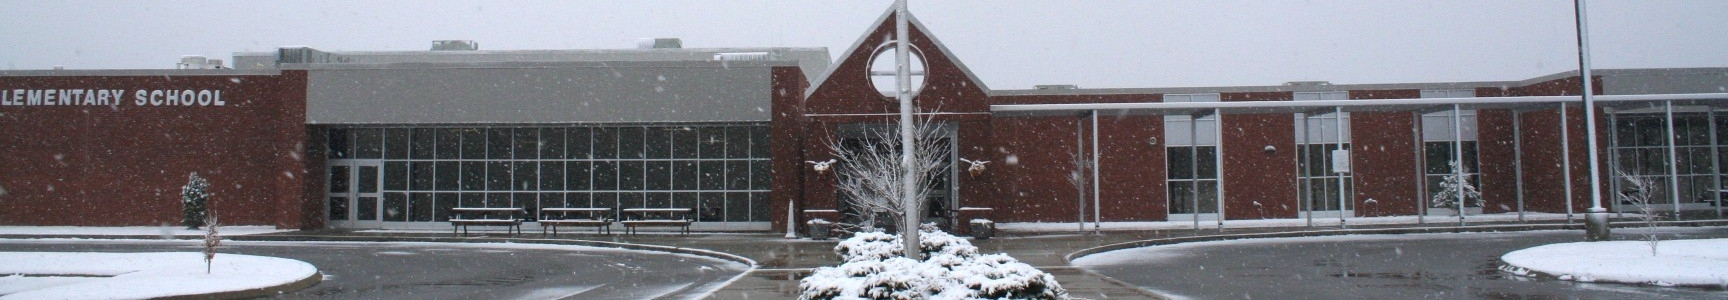 Winfield Elementary School - Cropped.jpg